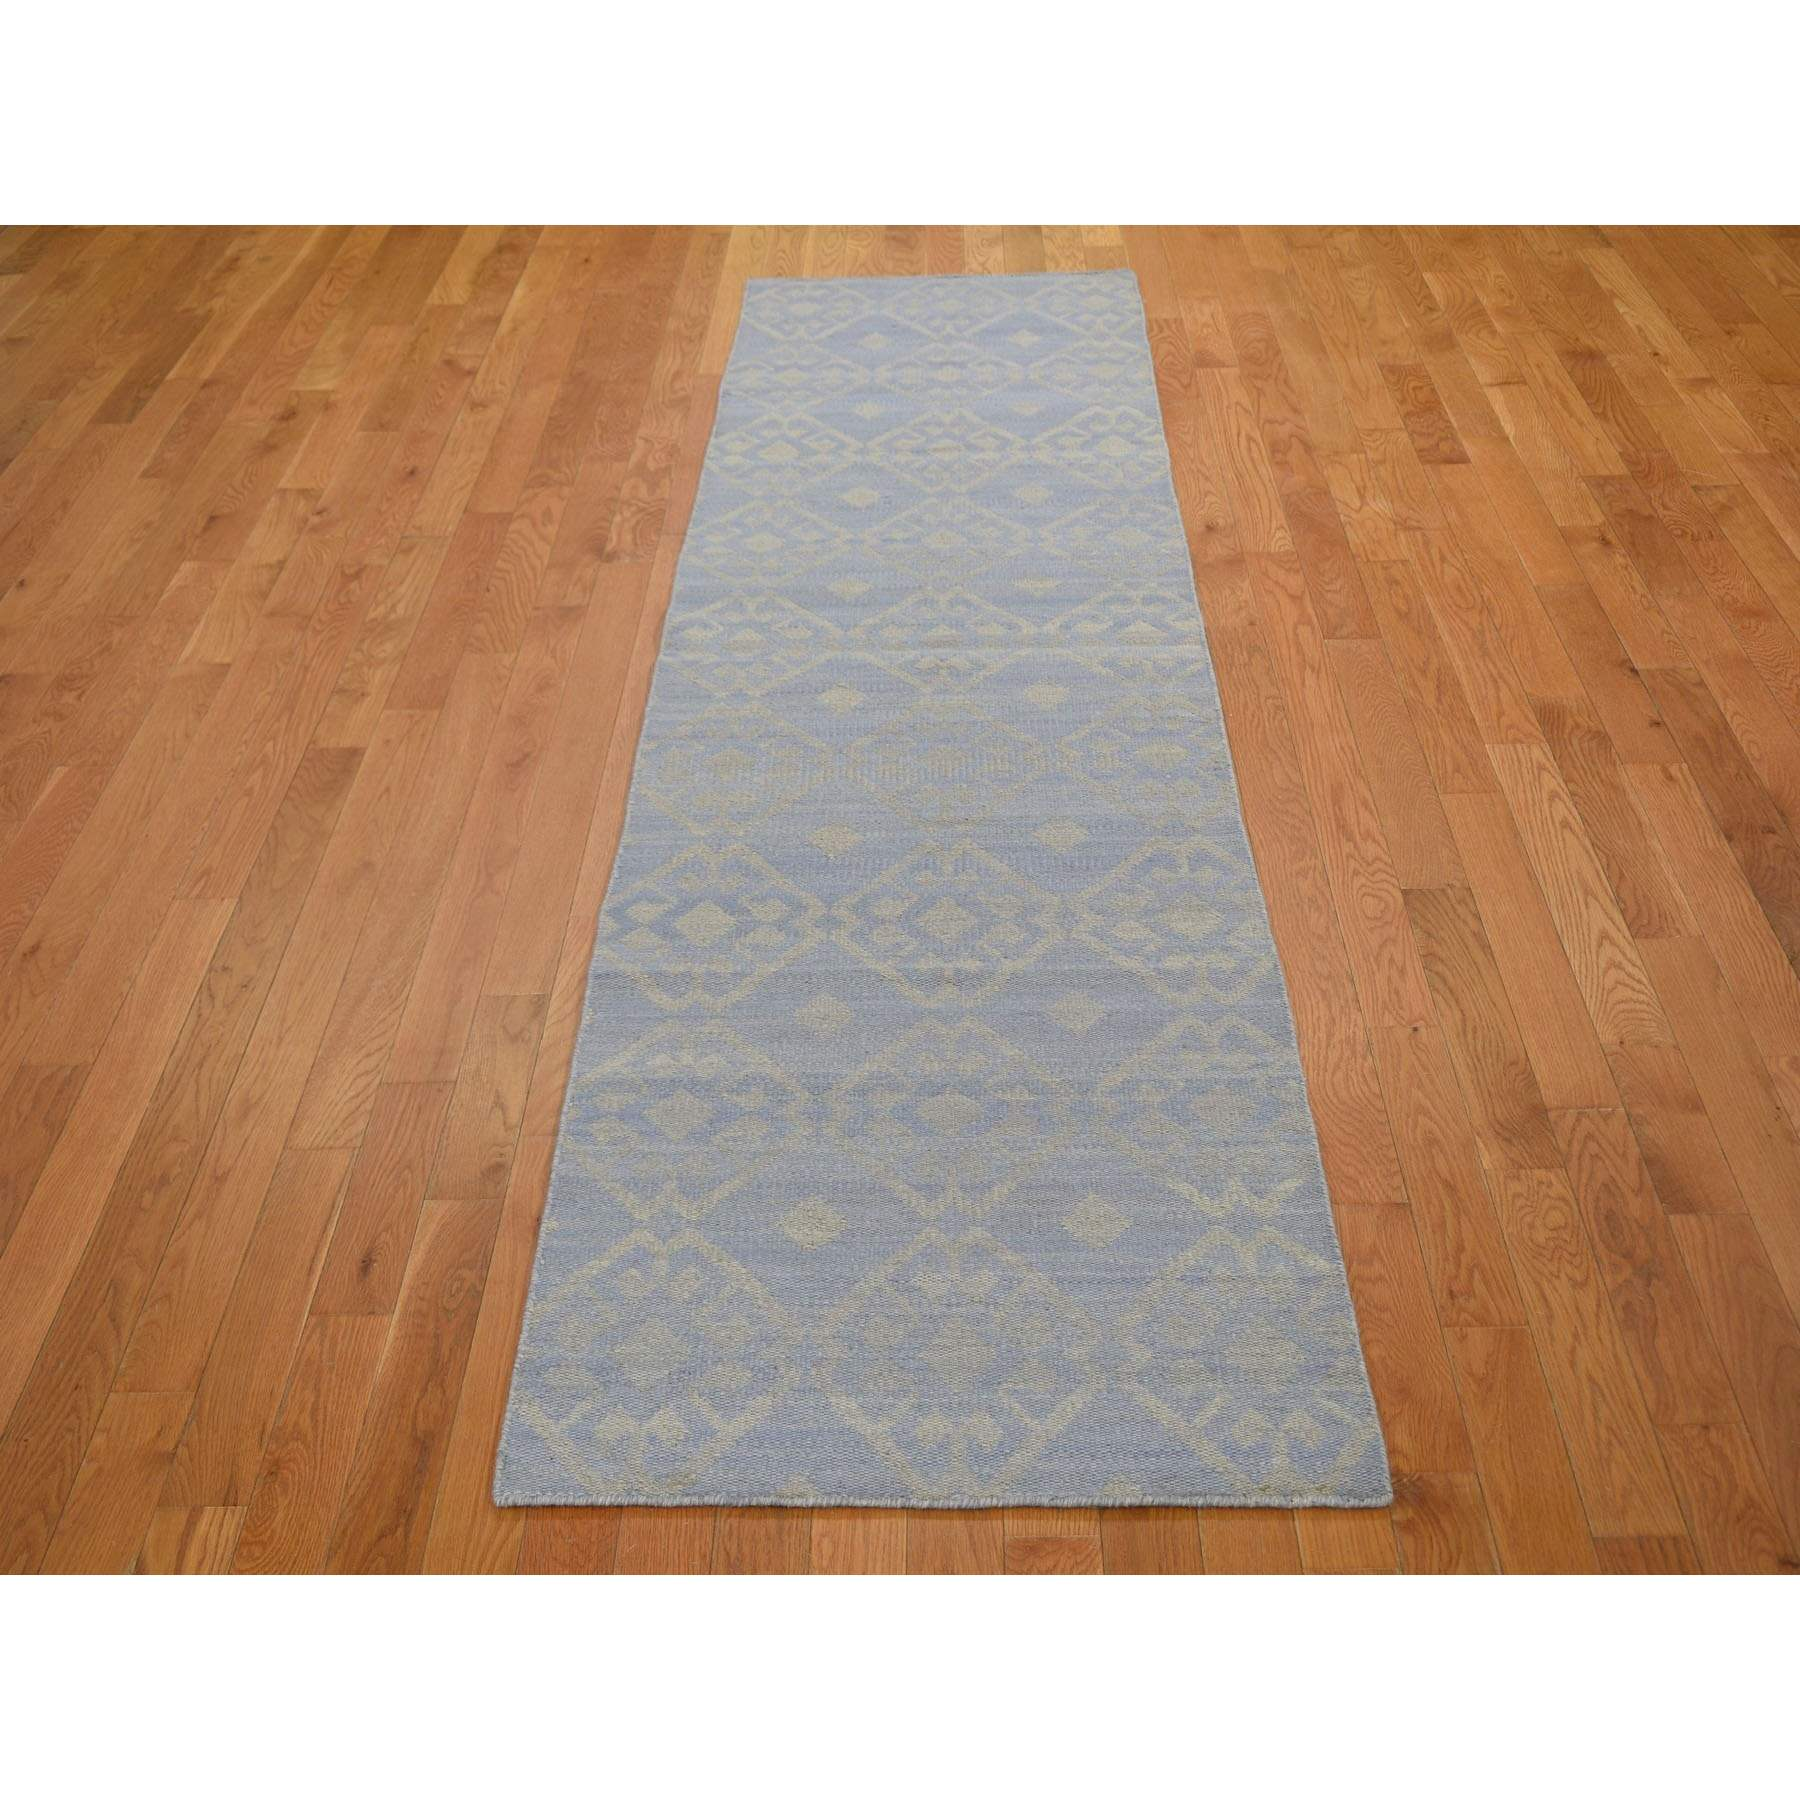 Flat-Weave-Hand-Woven-Rug-295890